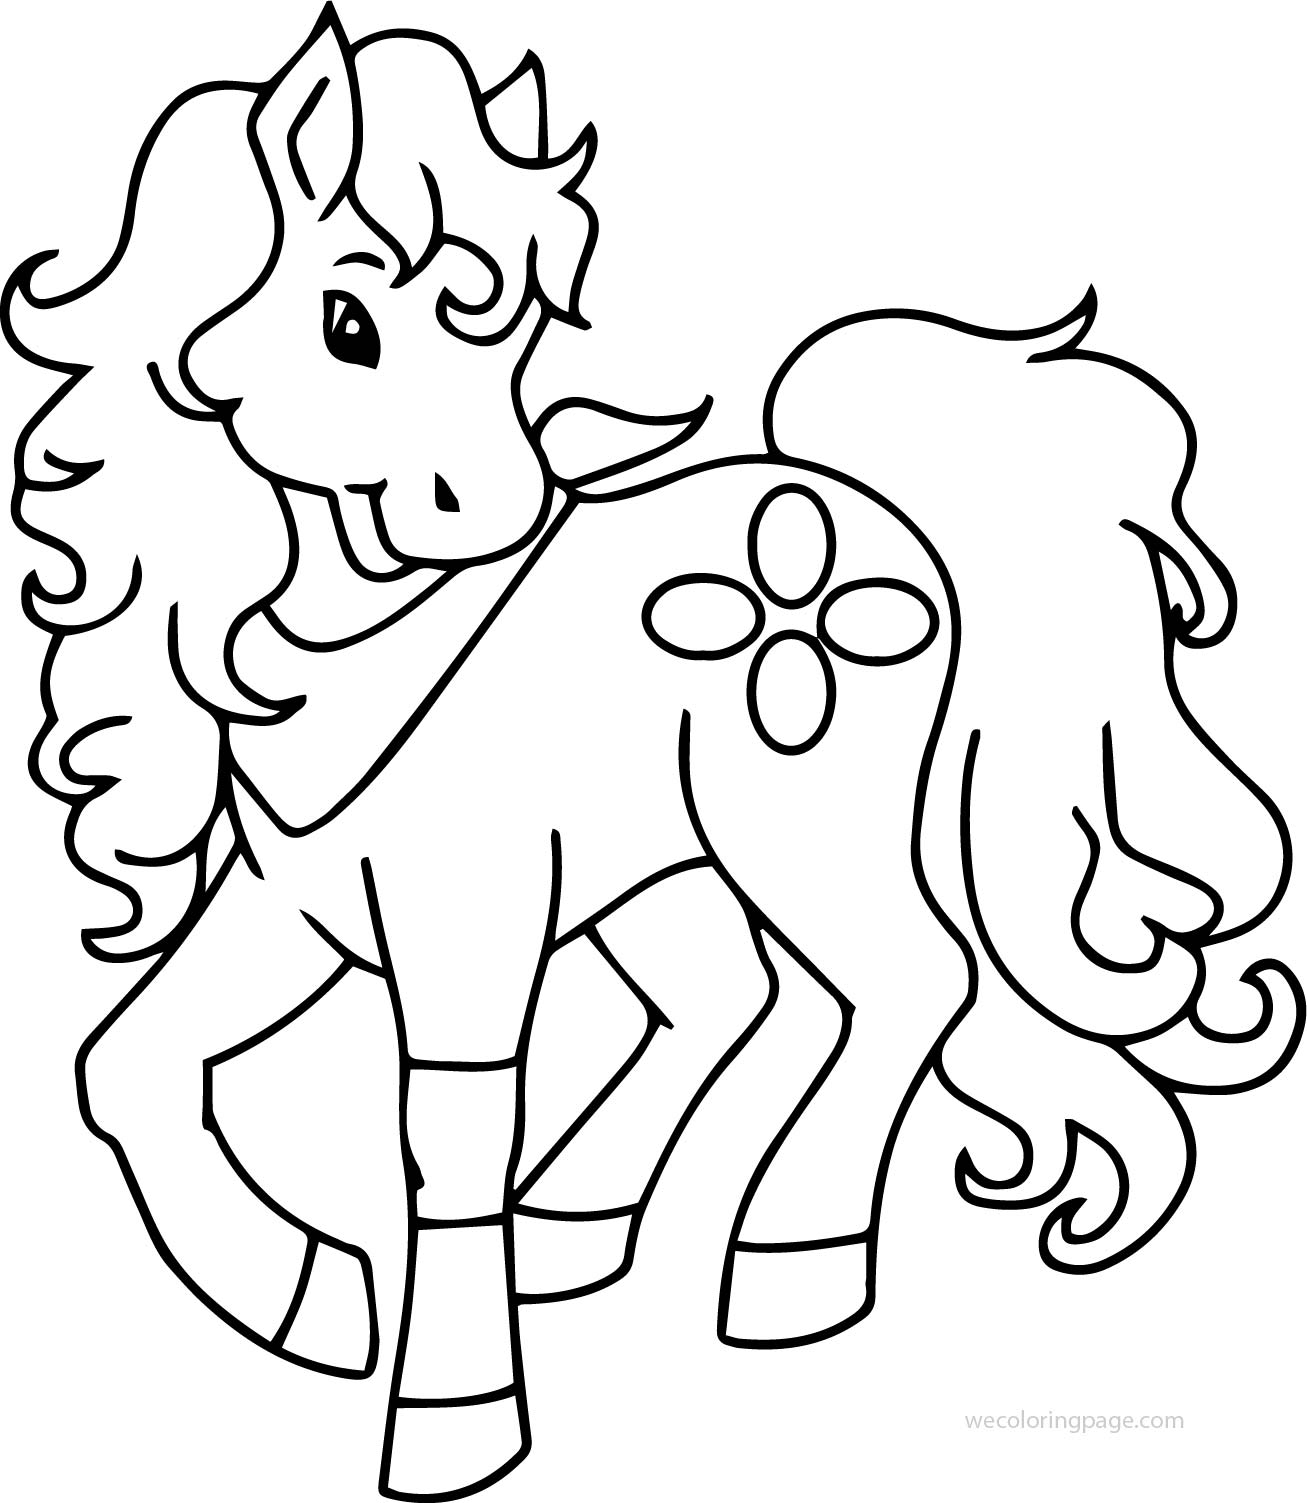 Horse Running Coloring Page.Horse Coloring Pages Running